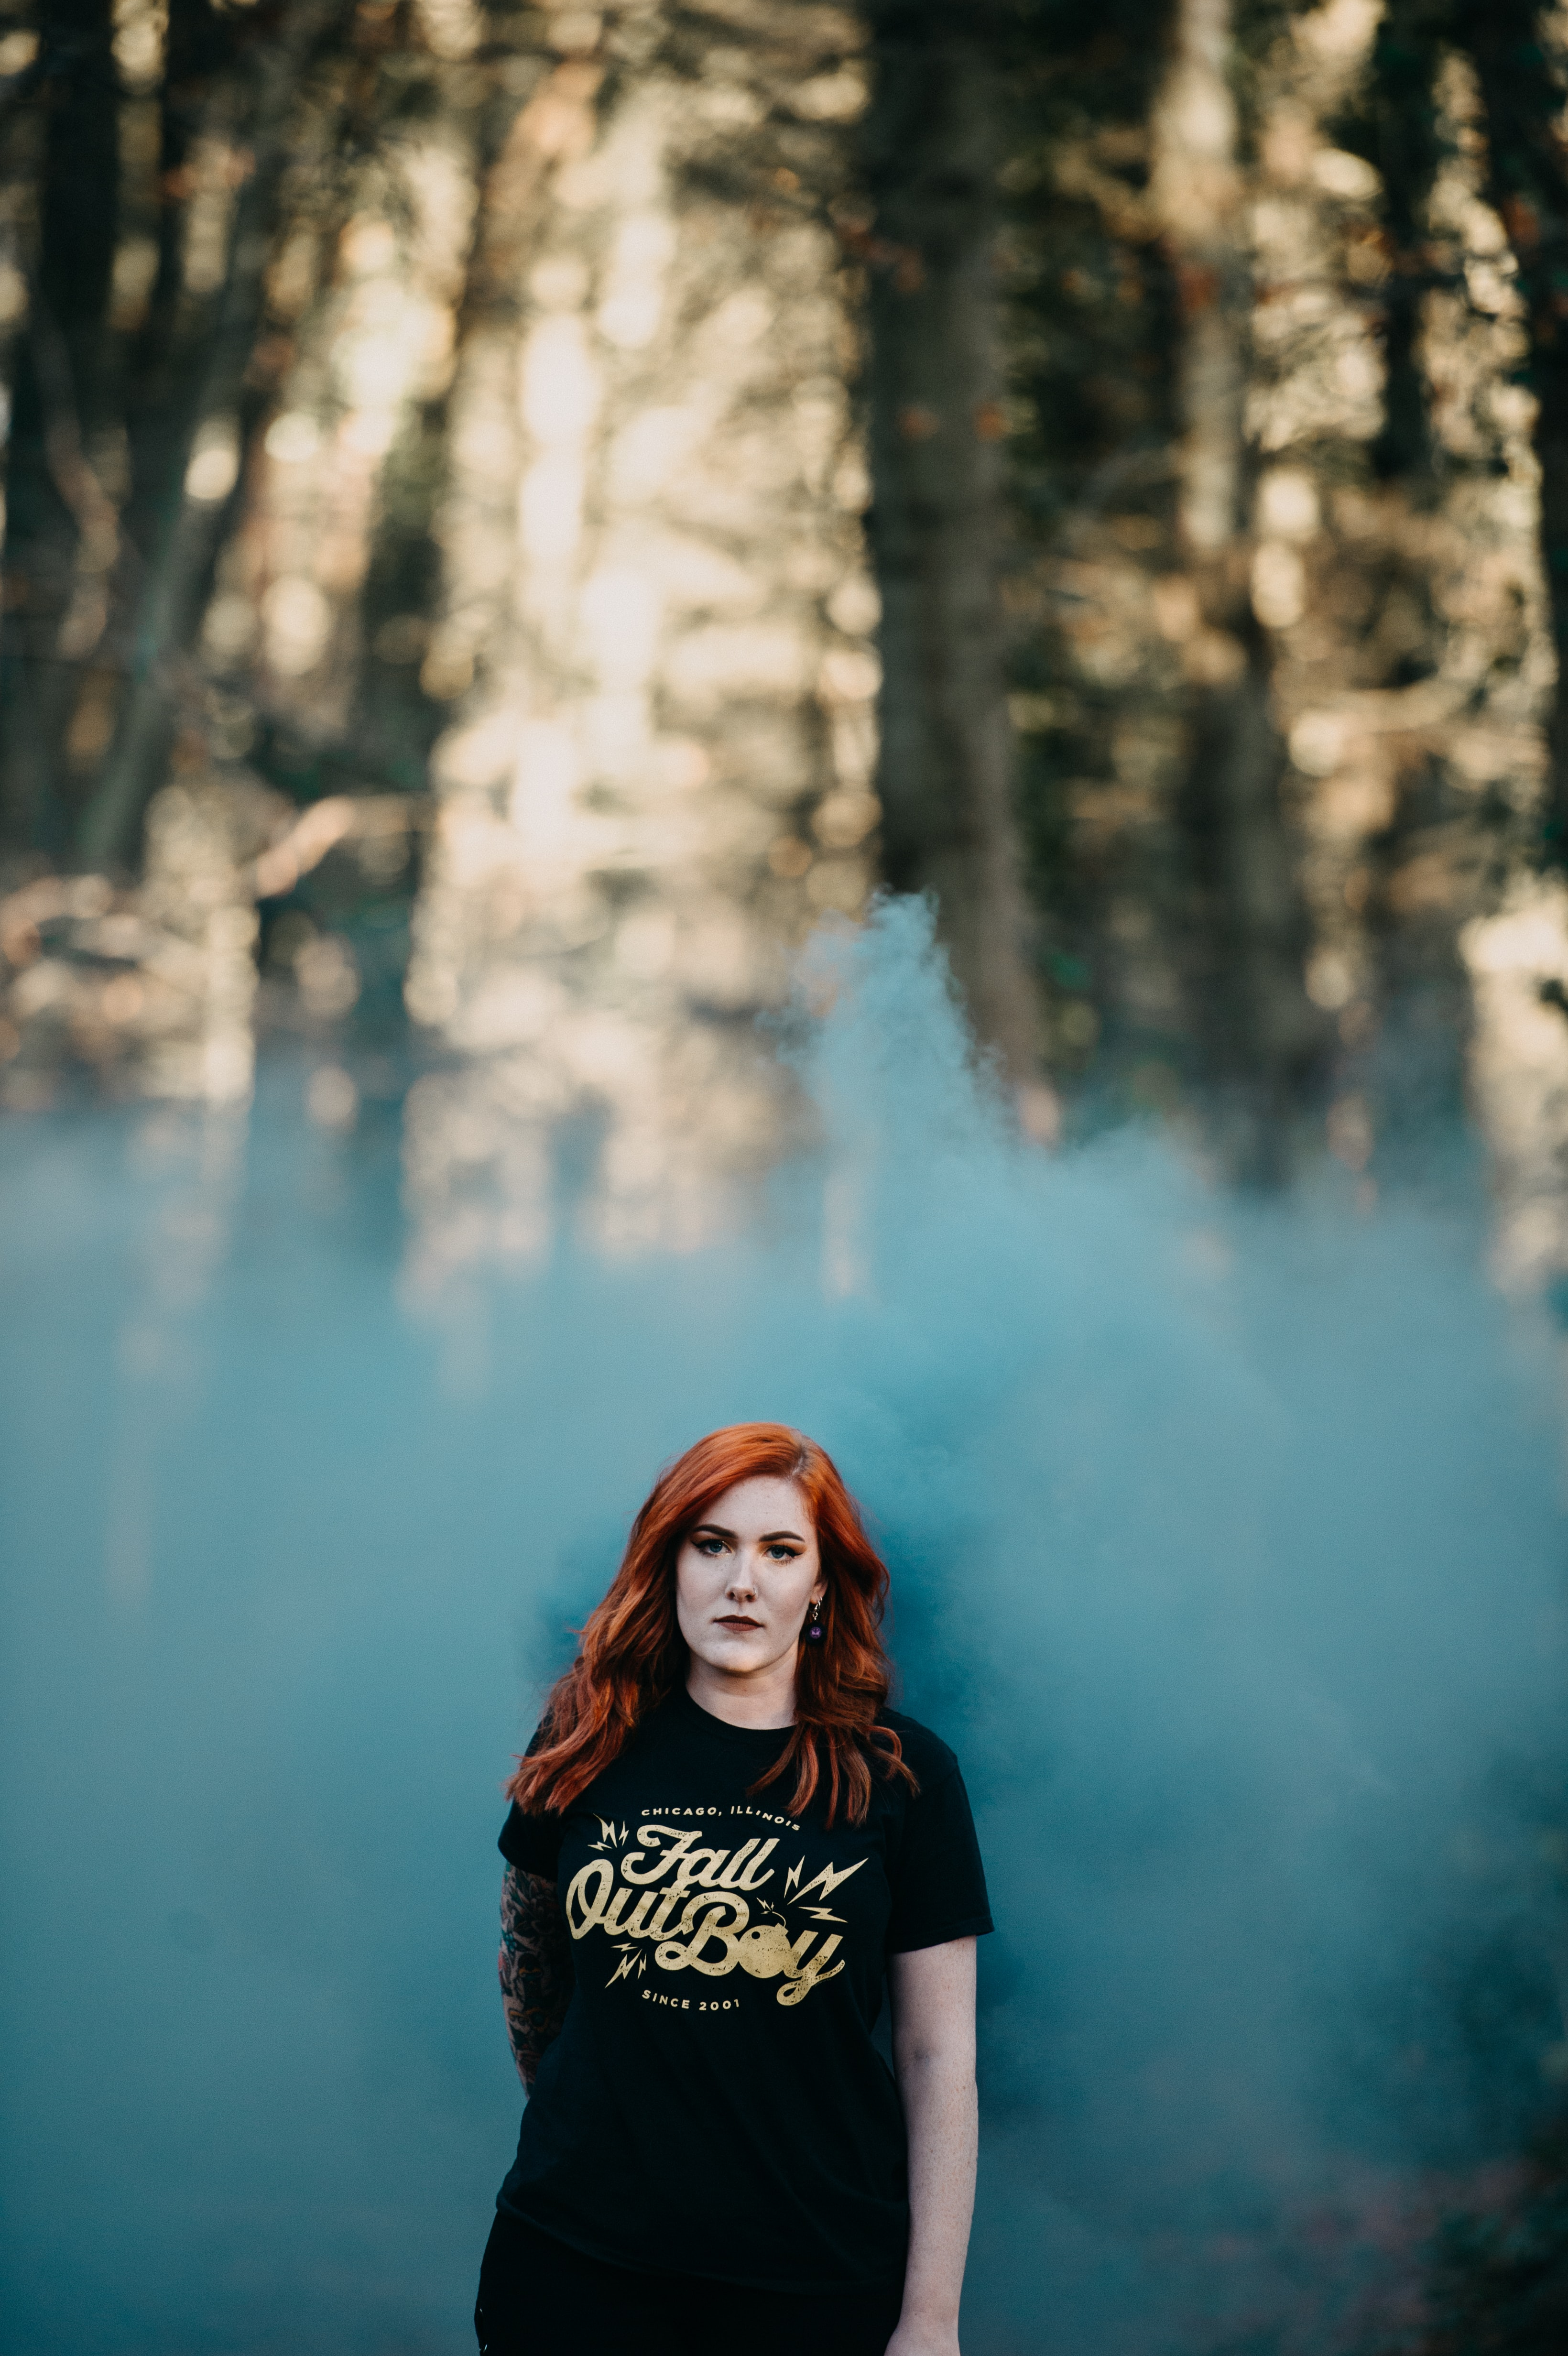 woman in black t-shirt with teal smoke in selective focus photography